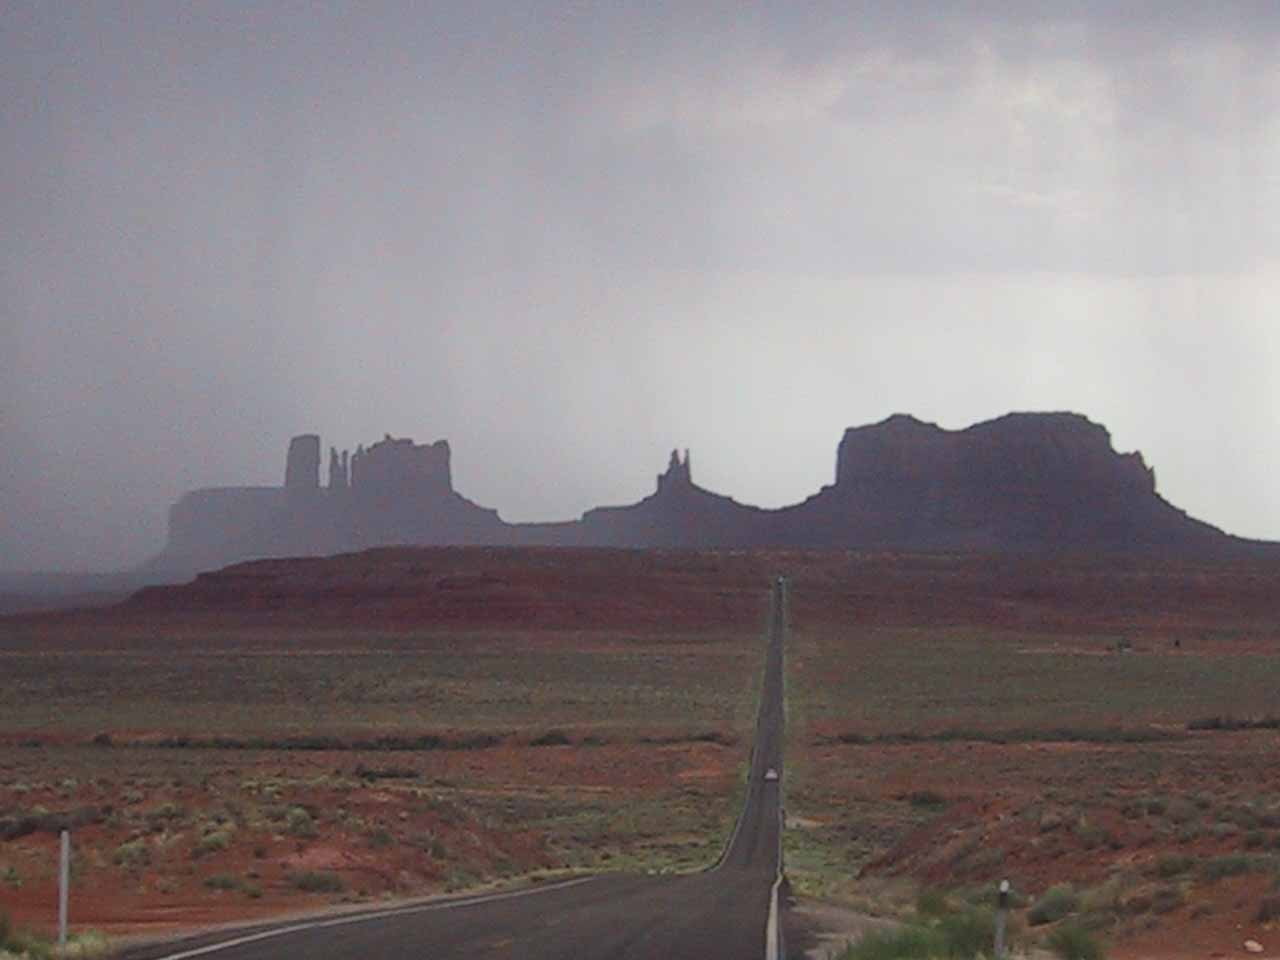 Approaching Monument Valley in a pretty intense desert thunderstorm